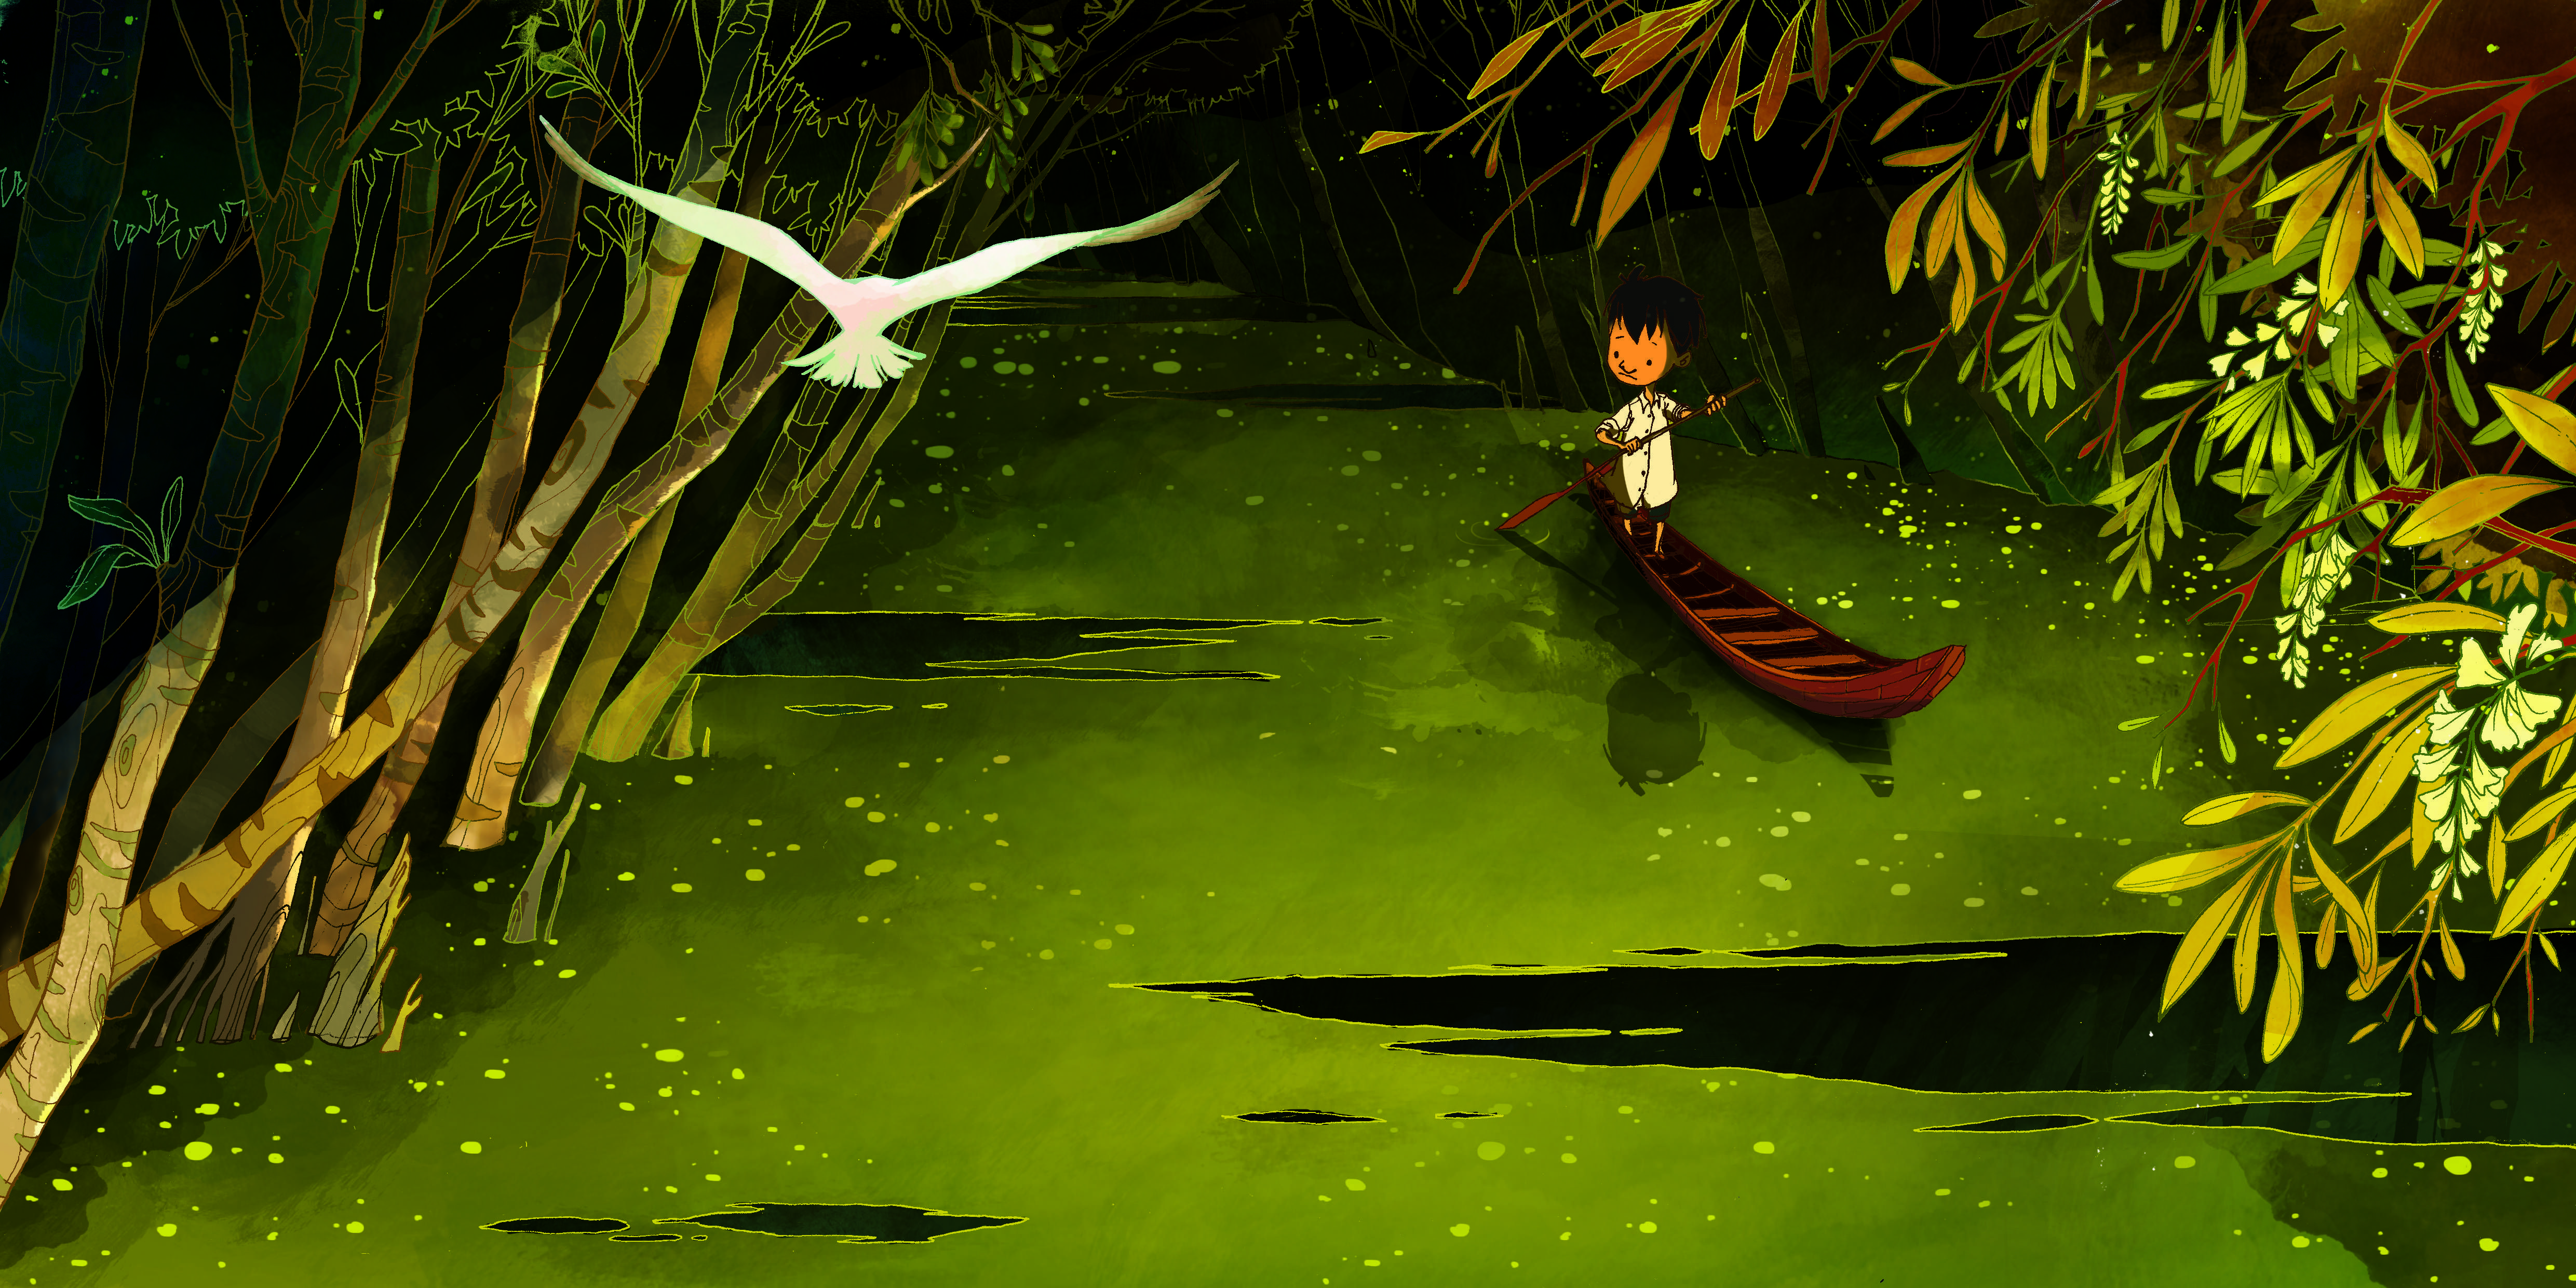 Phung Nguyen Quang and Huynh Kim Lien, a pair of Vietnamese children's book authors, took the top prize at this year's Asia-wide Scholastic Picture Book Award competition. Their beautifully illustrated story, The First Journey, follows An, a young boy who crosses the Mekong Delta for the first time on his way to school, encountering floods, snakes and a mysterious forest with a giant crocodile. Check out some outstanding illustrations from the book....